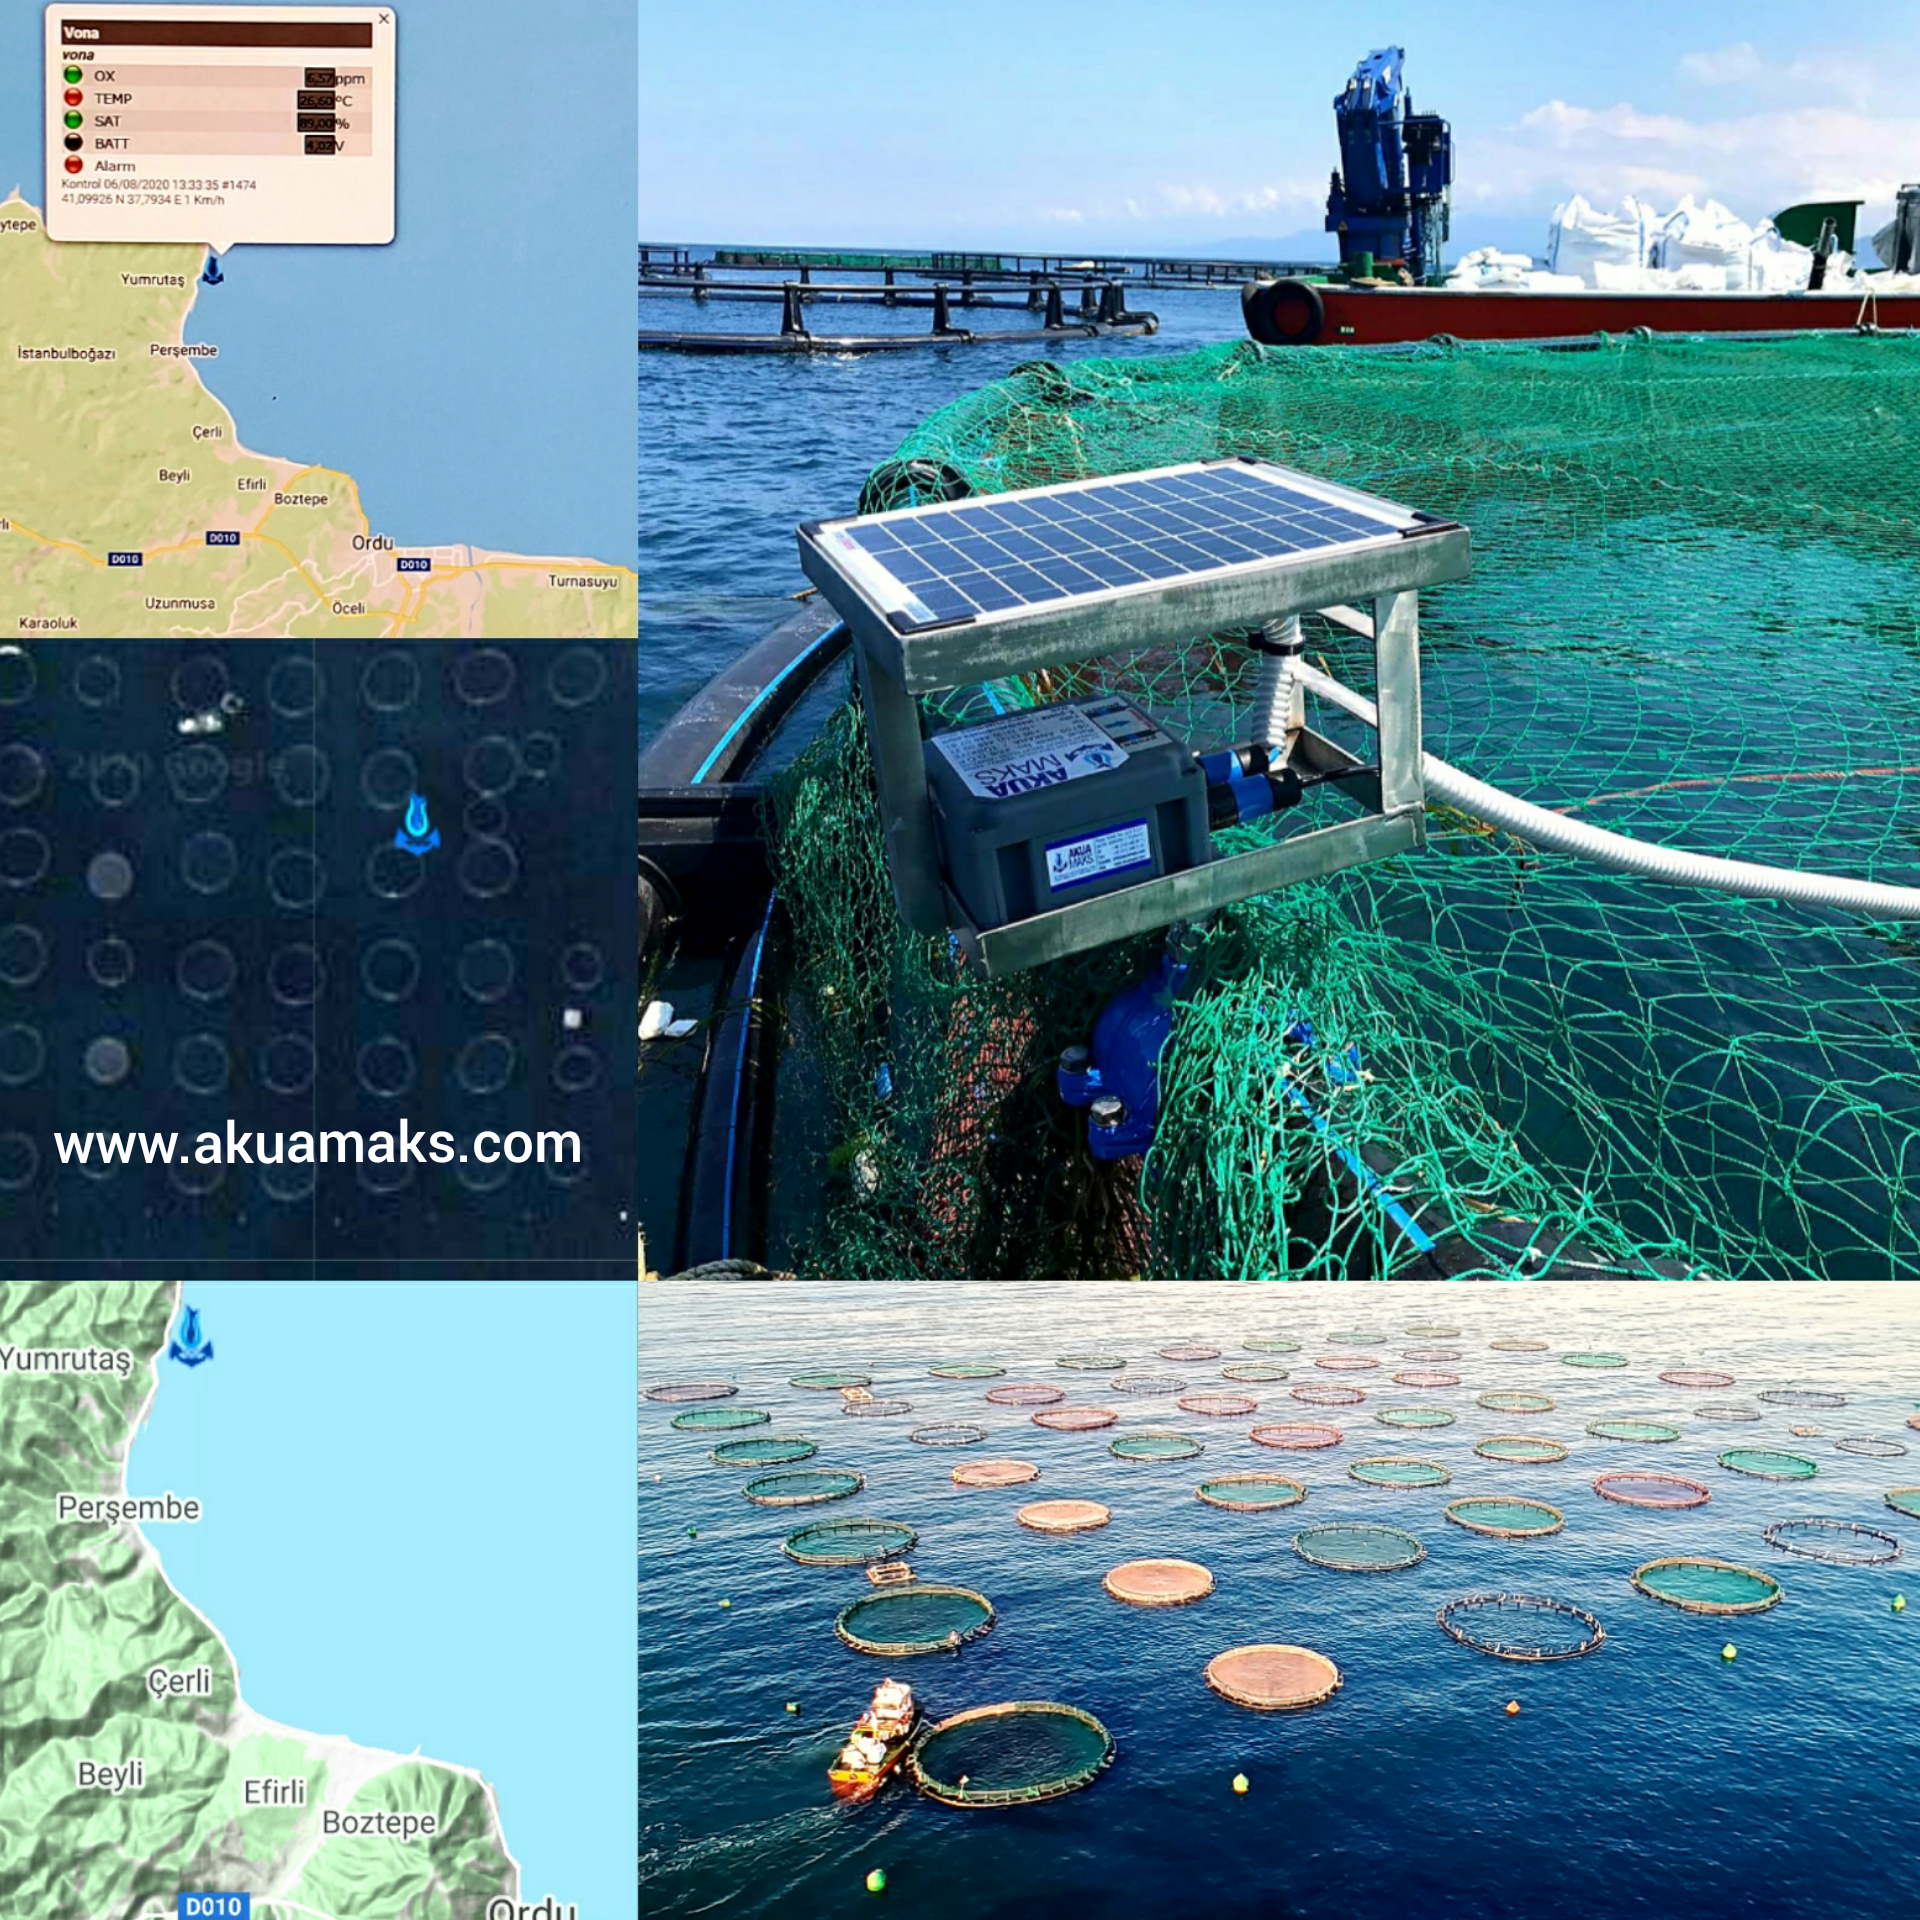 Our Monitoring Systems Bodrum - Vona - Persembe - Ordu / Black Sea